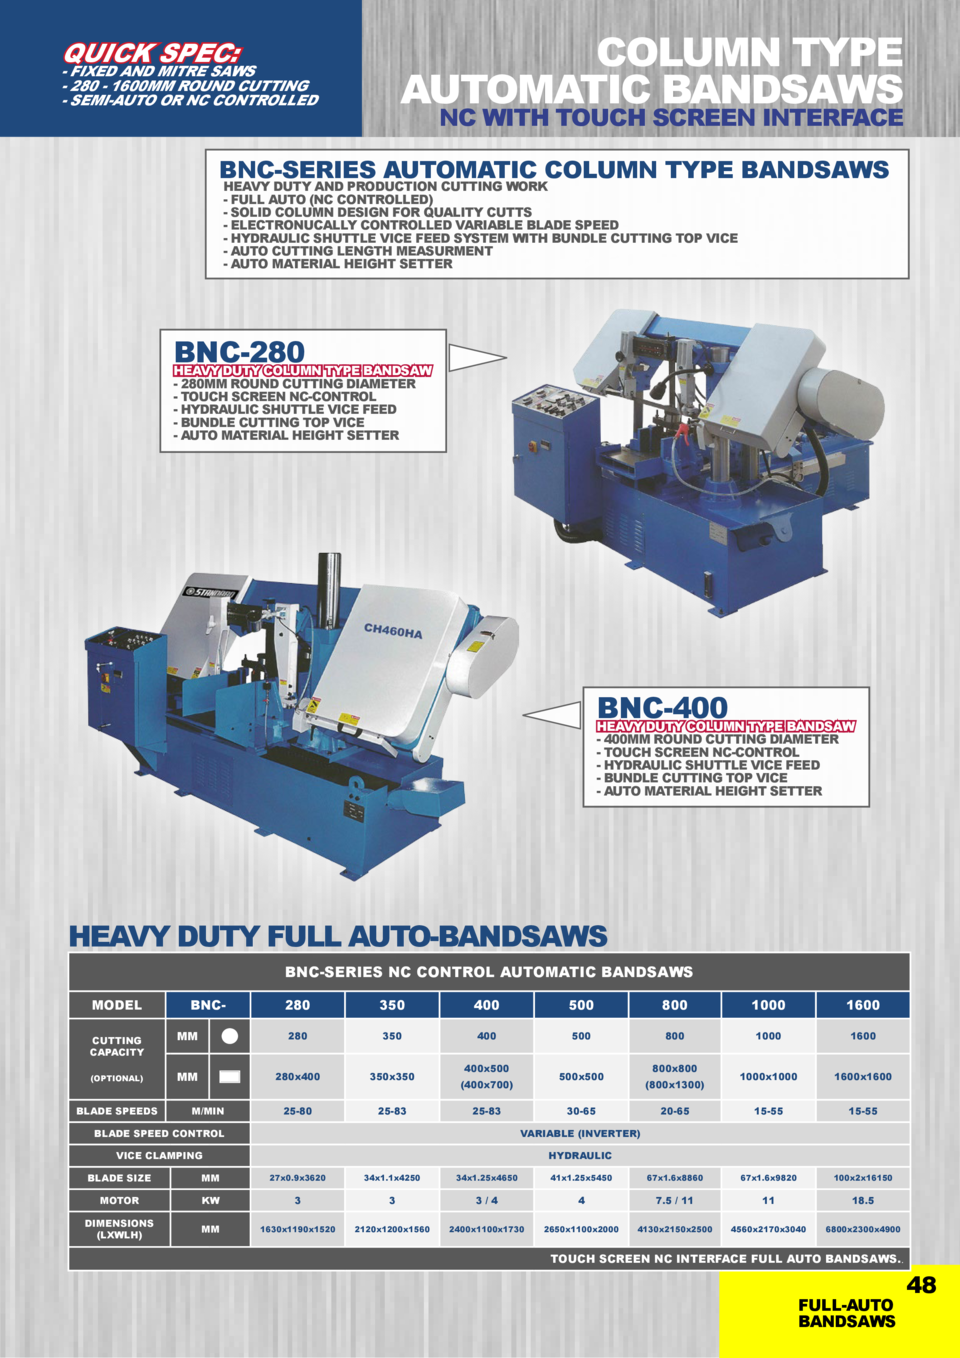 COLUMN TYPE AUTOMATIC BANDSAWS  QUICK SPEC   - FIXED AND MITRE SAWS - 280 - 1600MM ROUND CUTTING - SEMI-AUTO OR NC CONTROL...